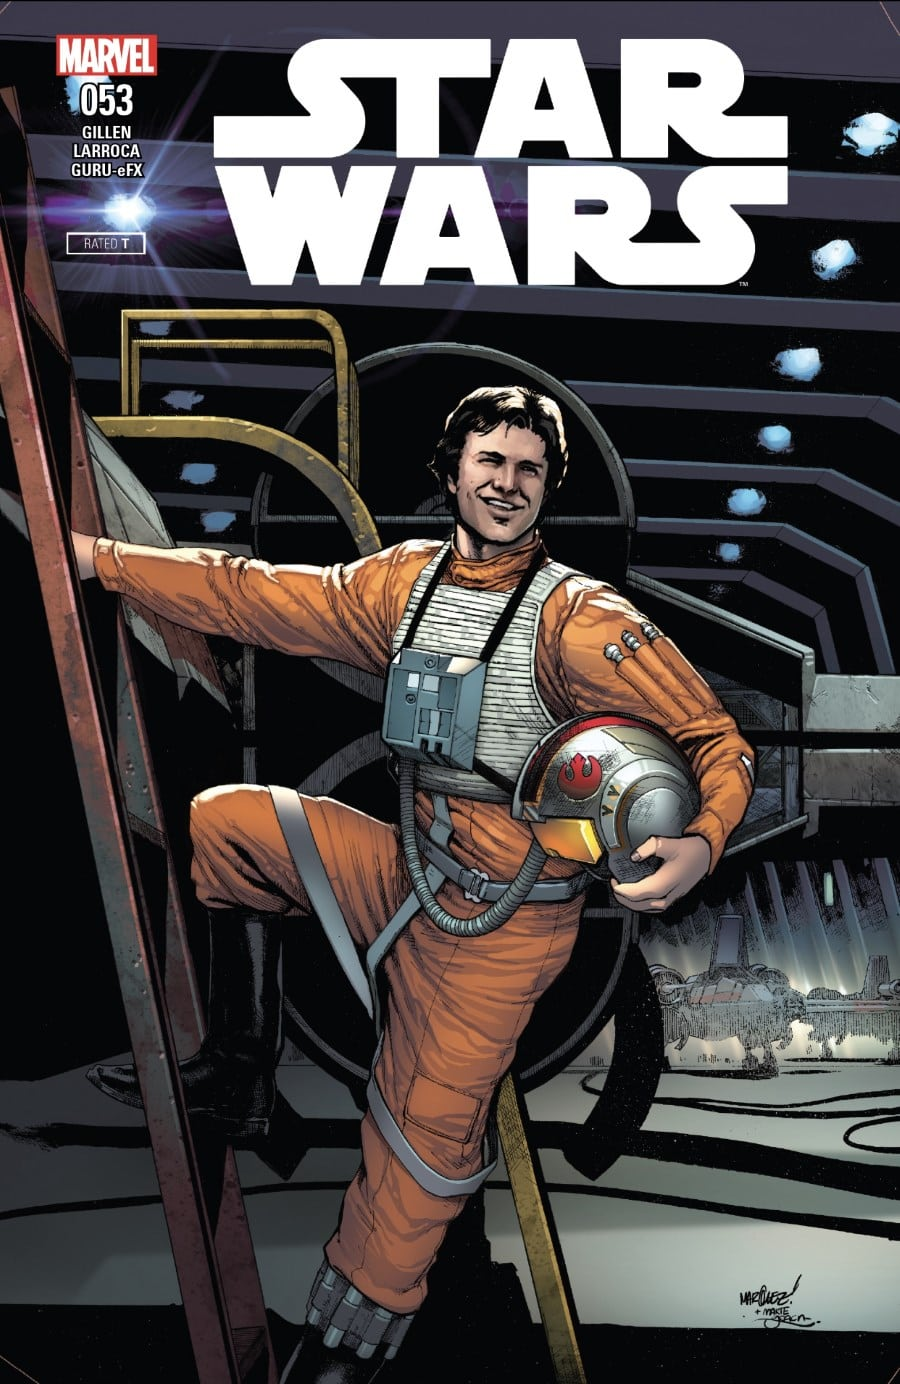 Star Wars #53 Cover